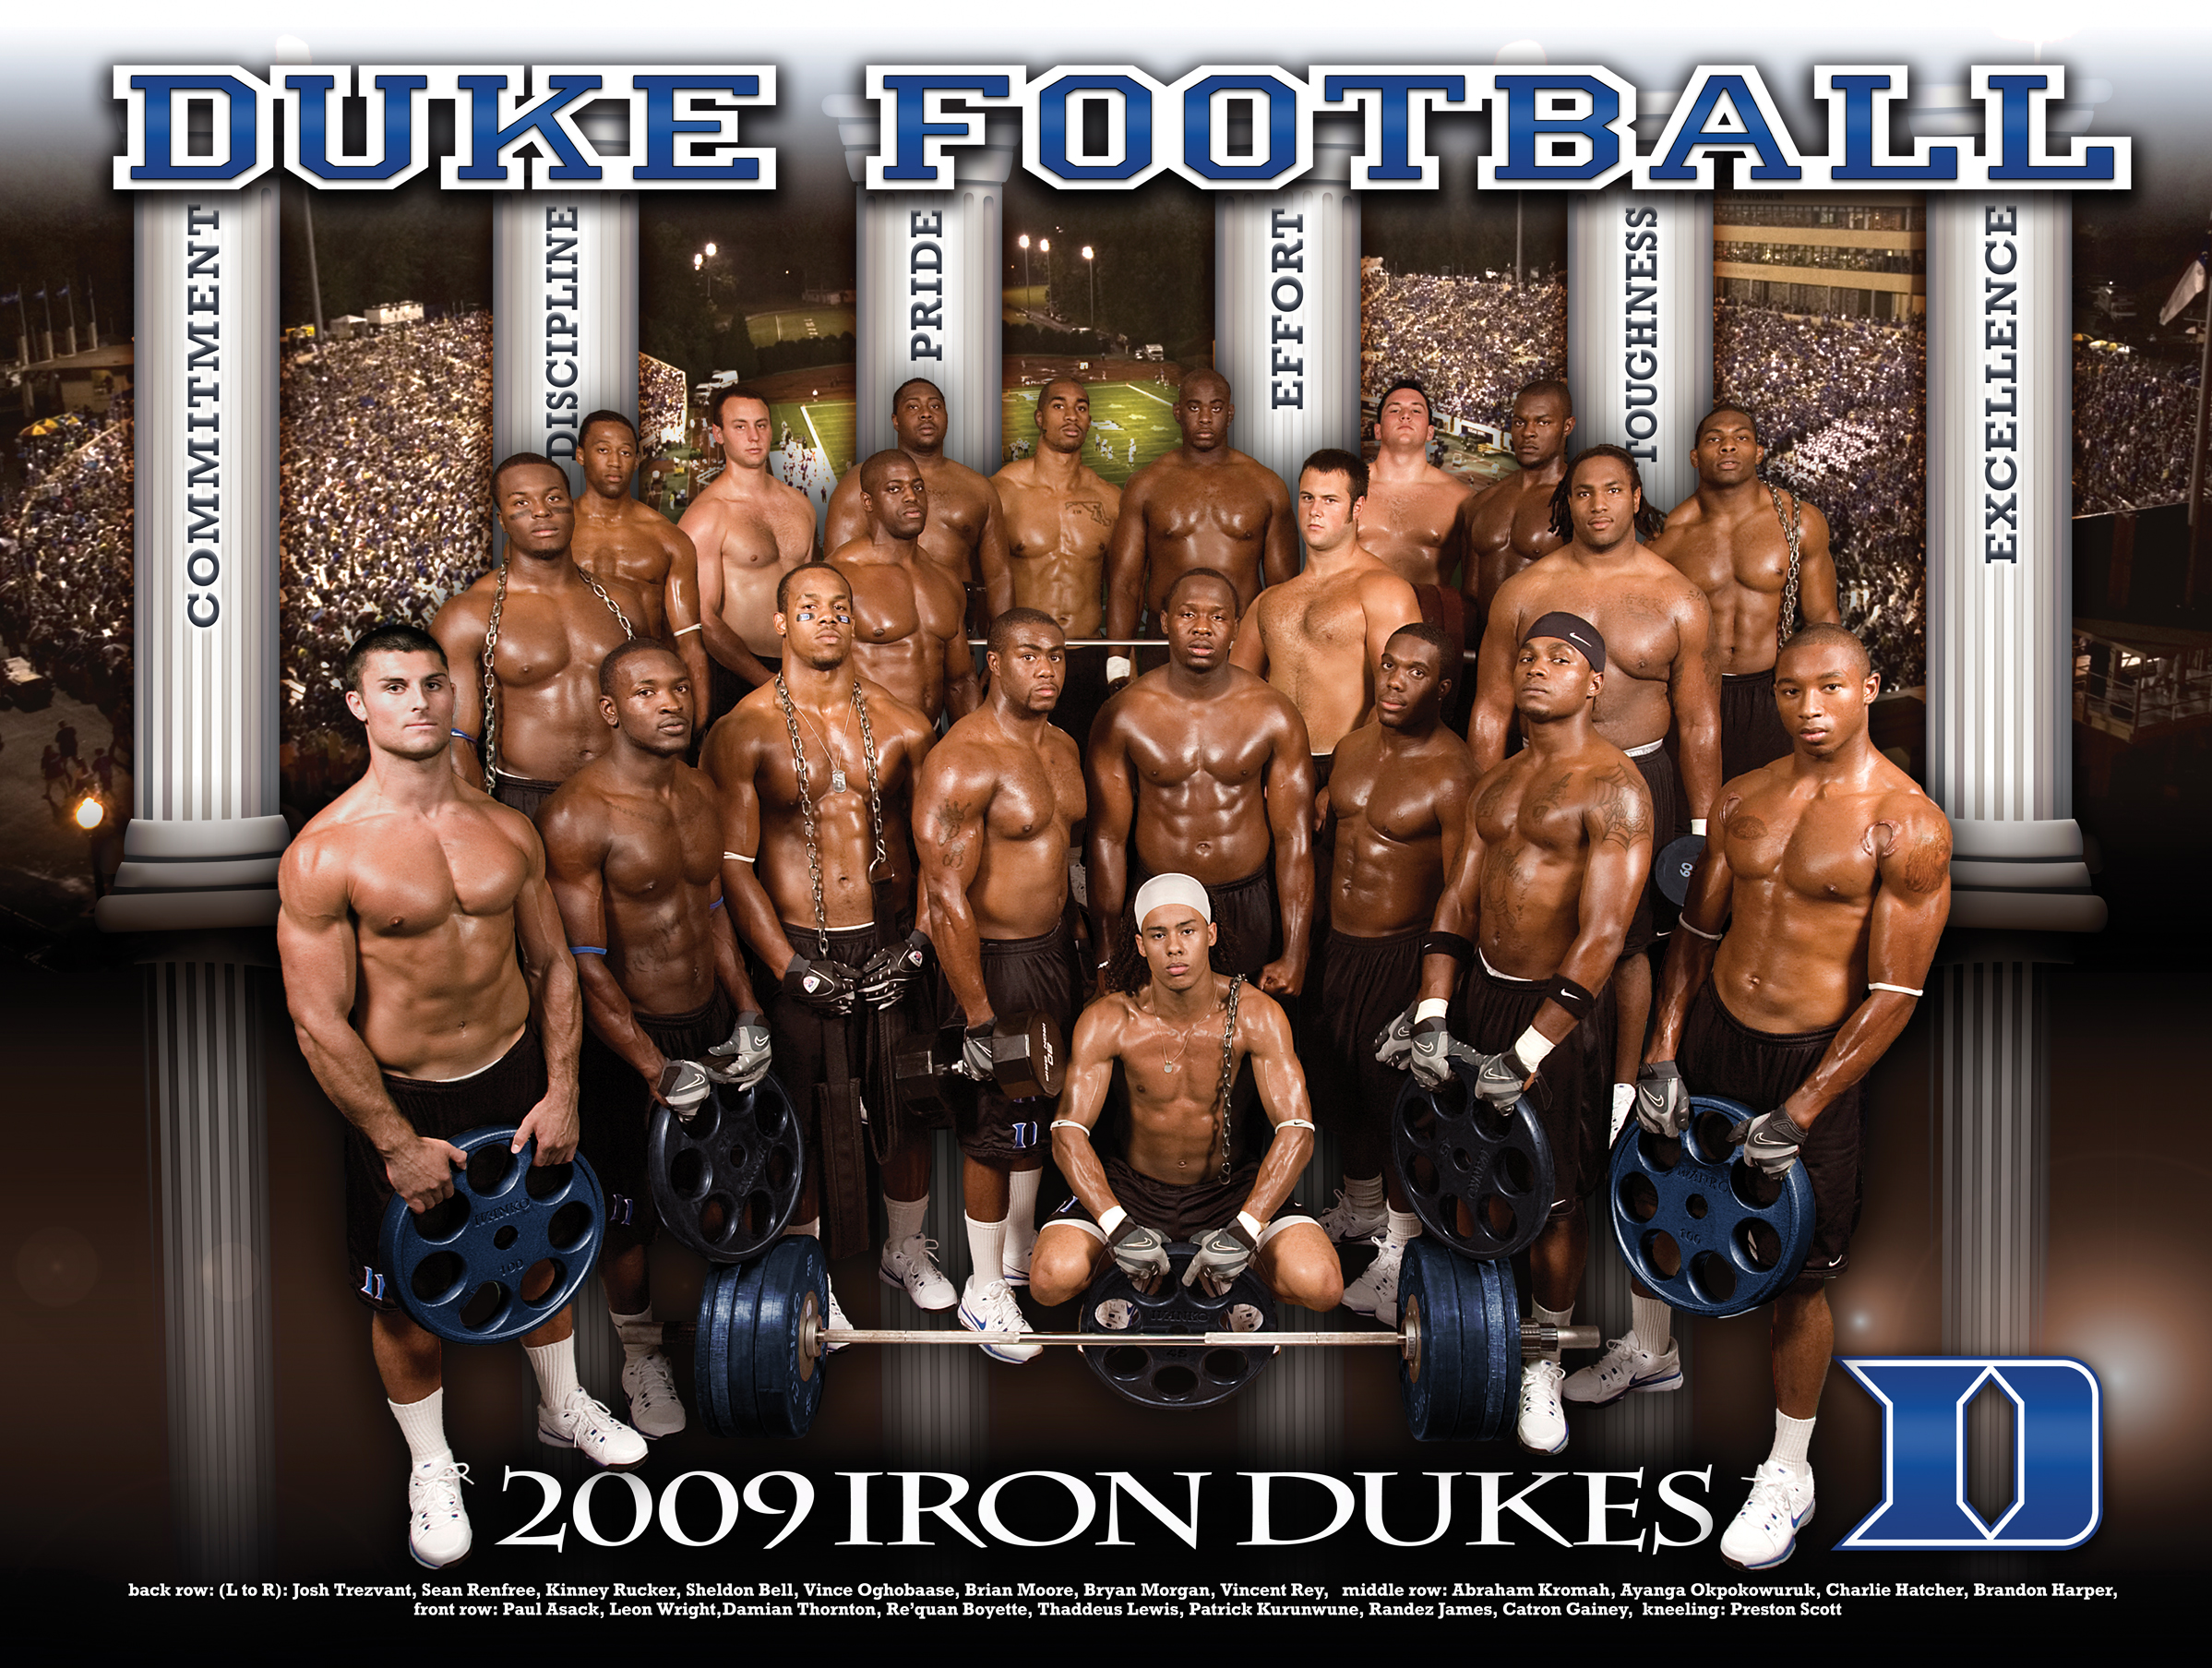 College Footballs Newest Trend Shirtless Photos With A Lot Of Baby Oil